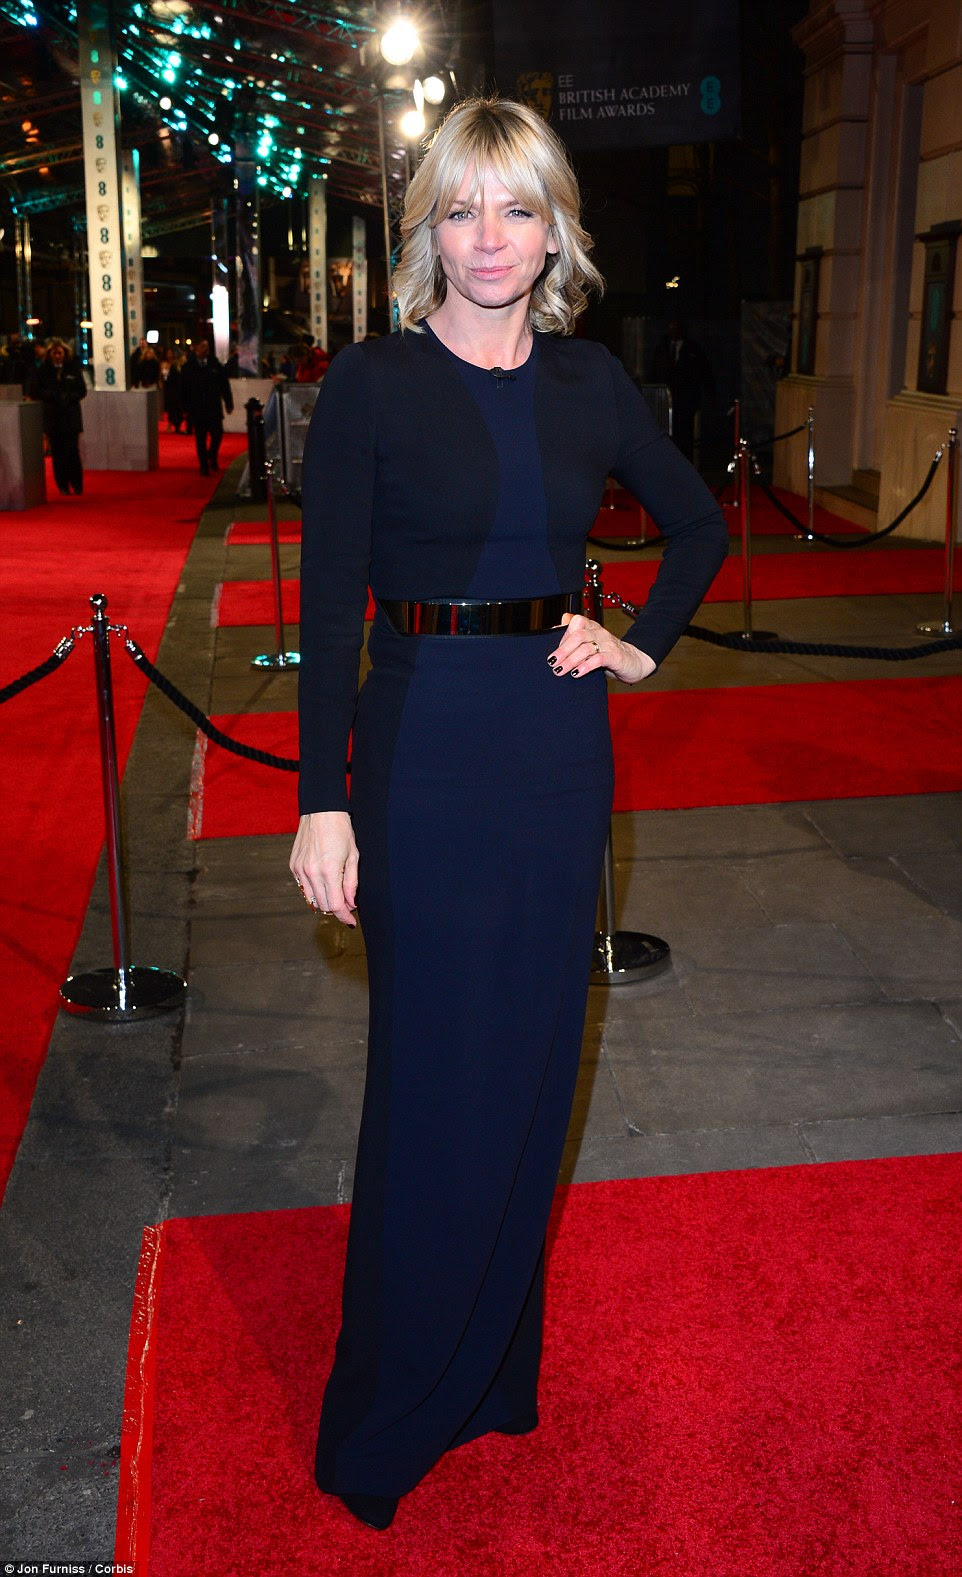 On the ball! Zoe Ball looked sensational in her navy pillar dress which swept the floor